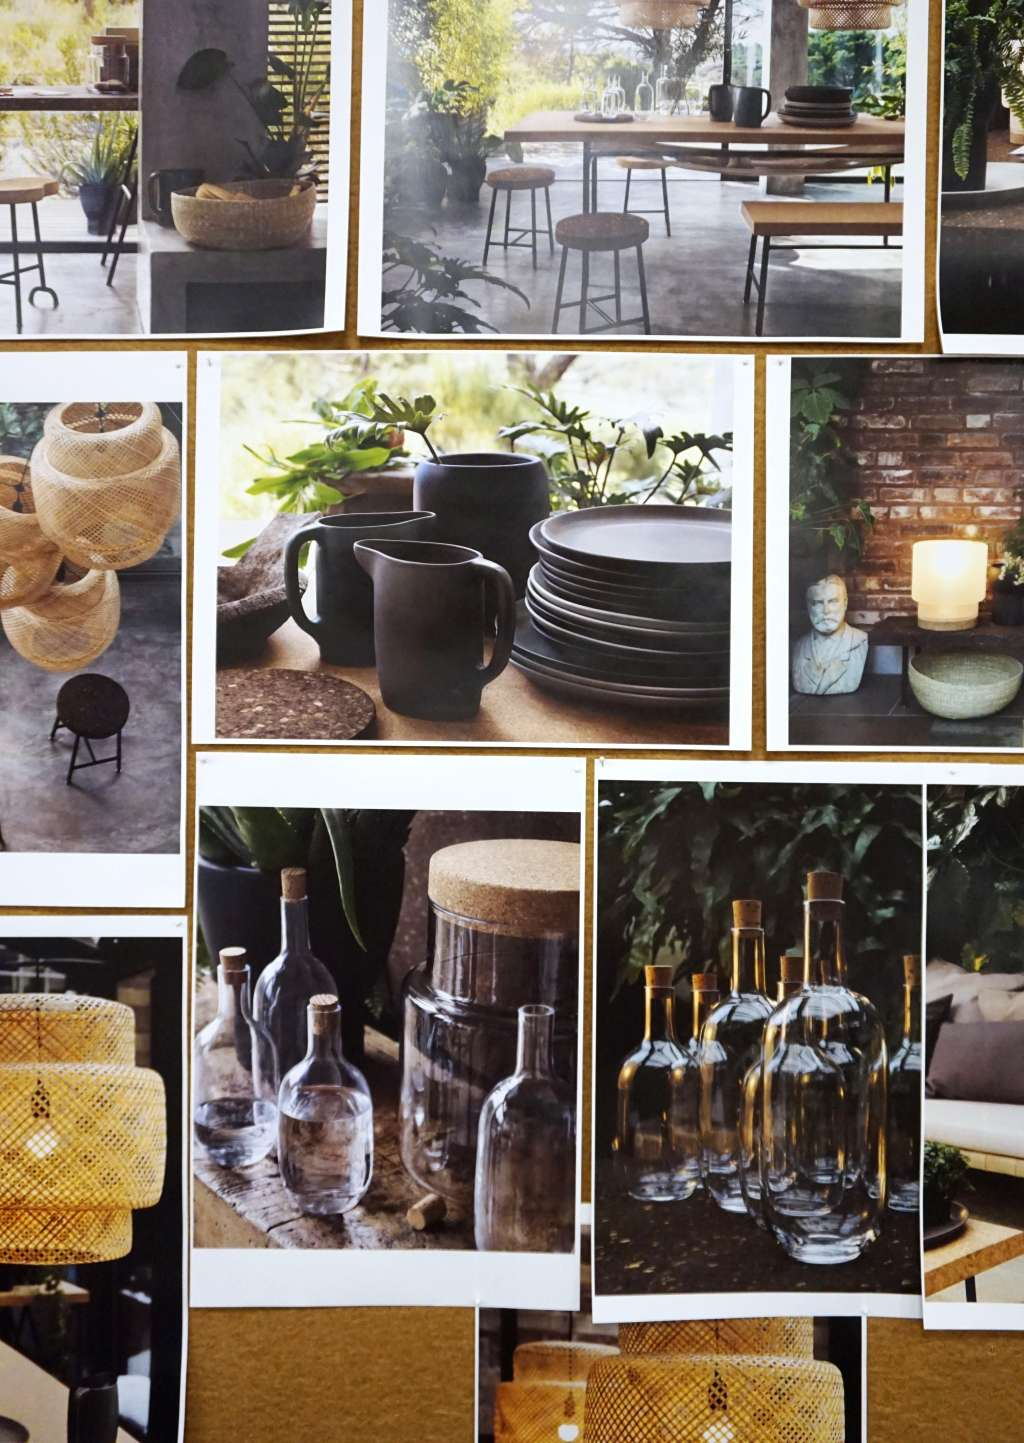 Sneak Peek at IKEA's Upcoming 2015 & 2016 Collections: The Top 10 Things We Can't Wait For